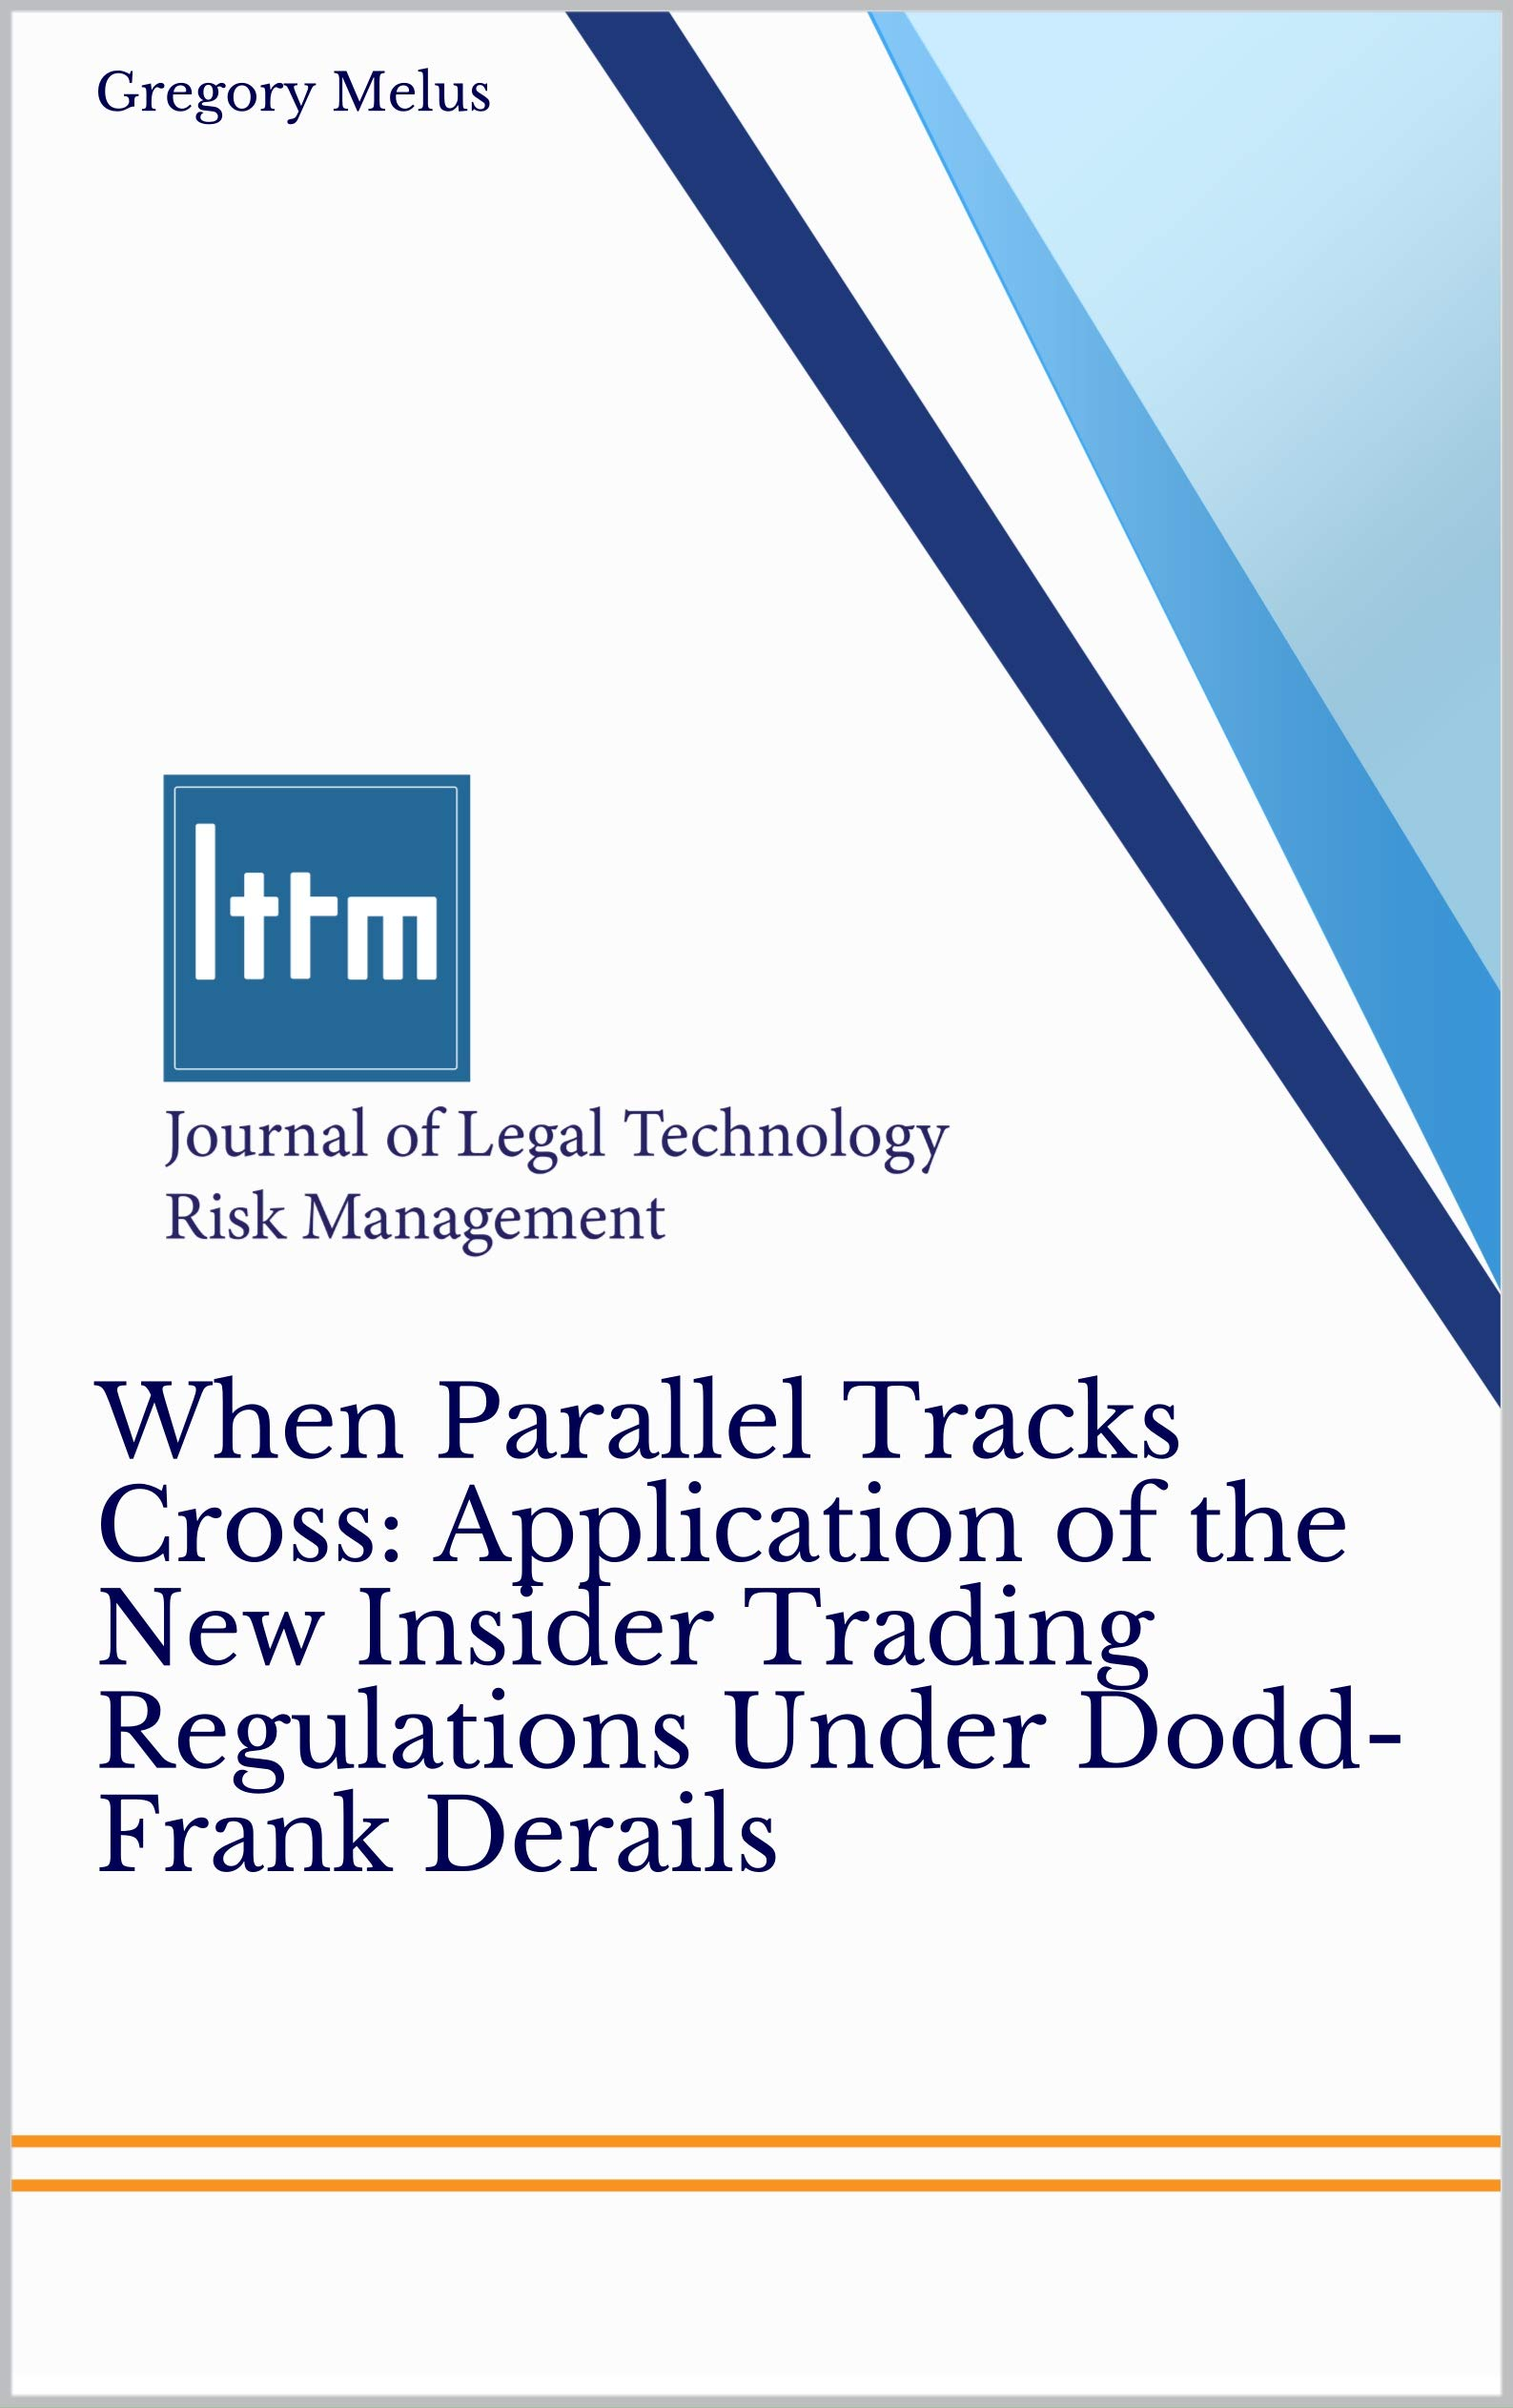 When Parallel Tracks Cross: Application of the New Insider Trading Regulations Under Dodd- Frank Derails: Journal of Law and Cyber Warfare, Volume 6, Issue 1